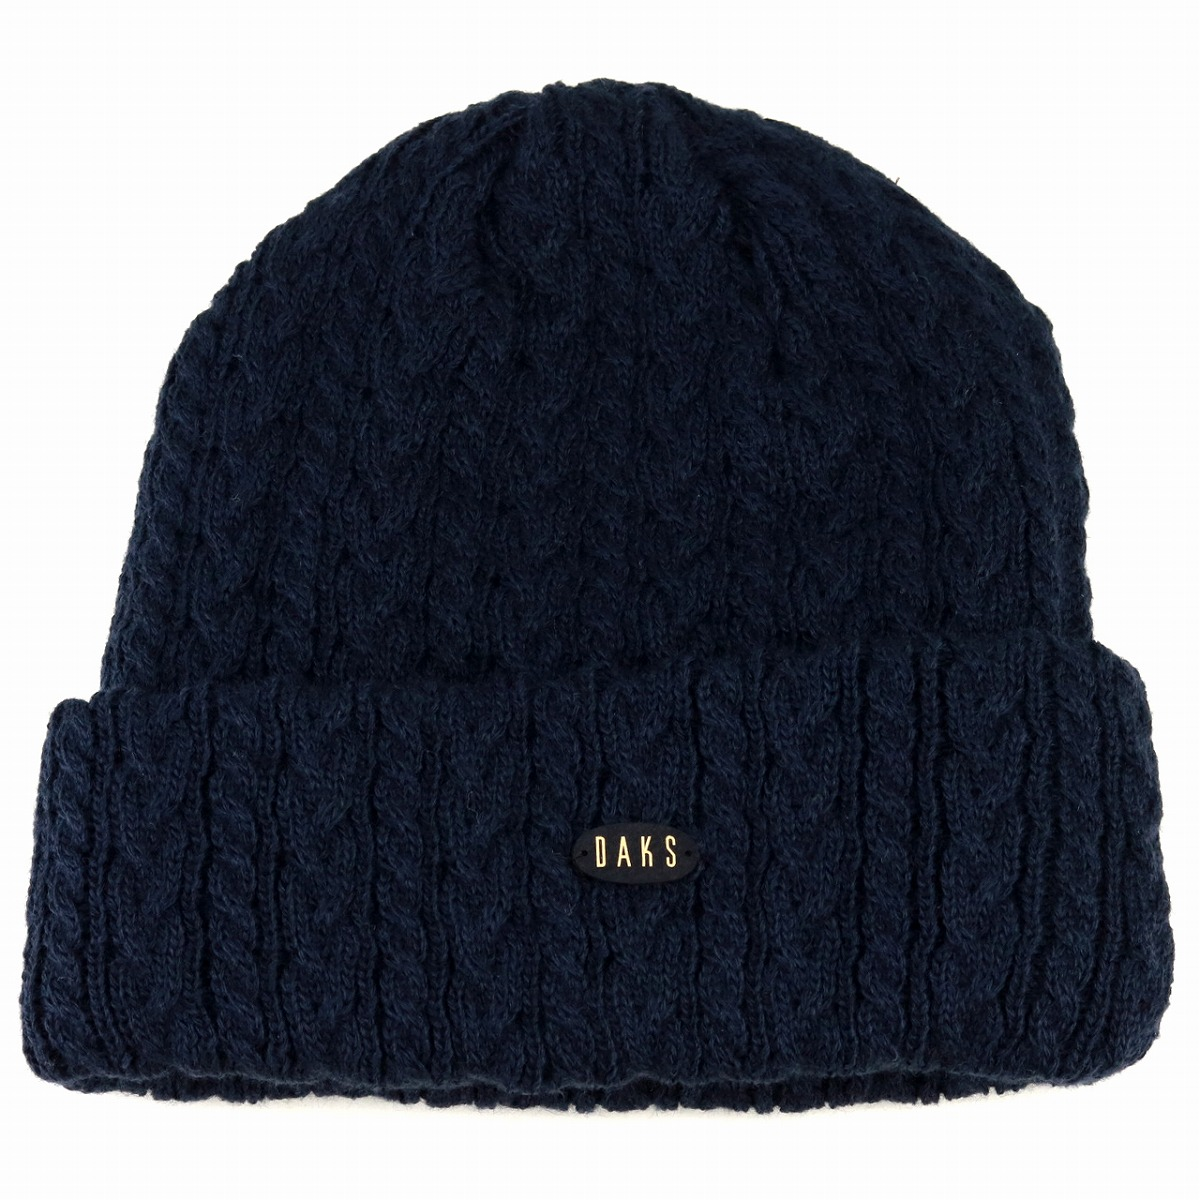 eae516680 It is ニットワッチ fashion / dark blue navy [beanie cap] man Christmas present  hat Lady's knit hat Shin pull plain fabric adjustable size ...